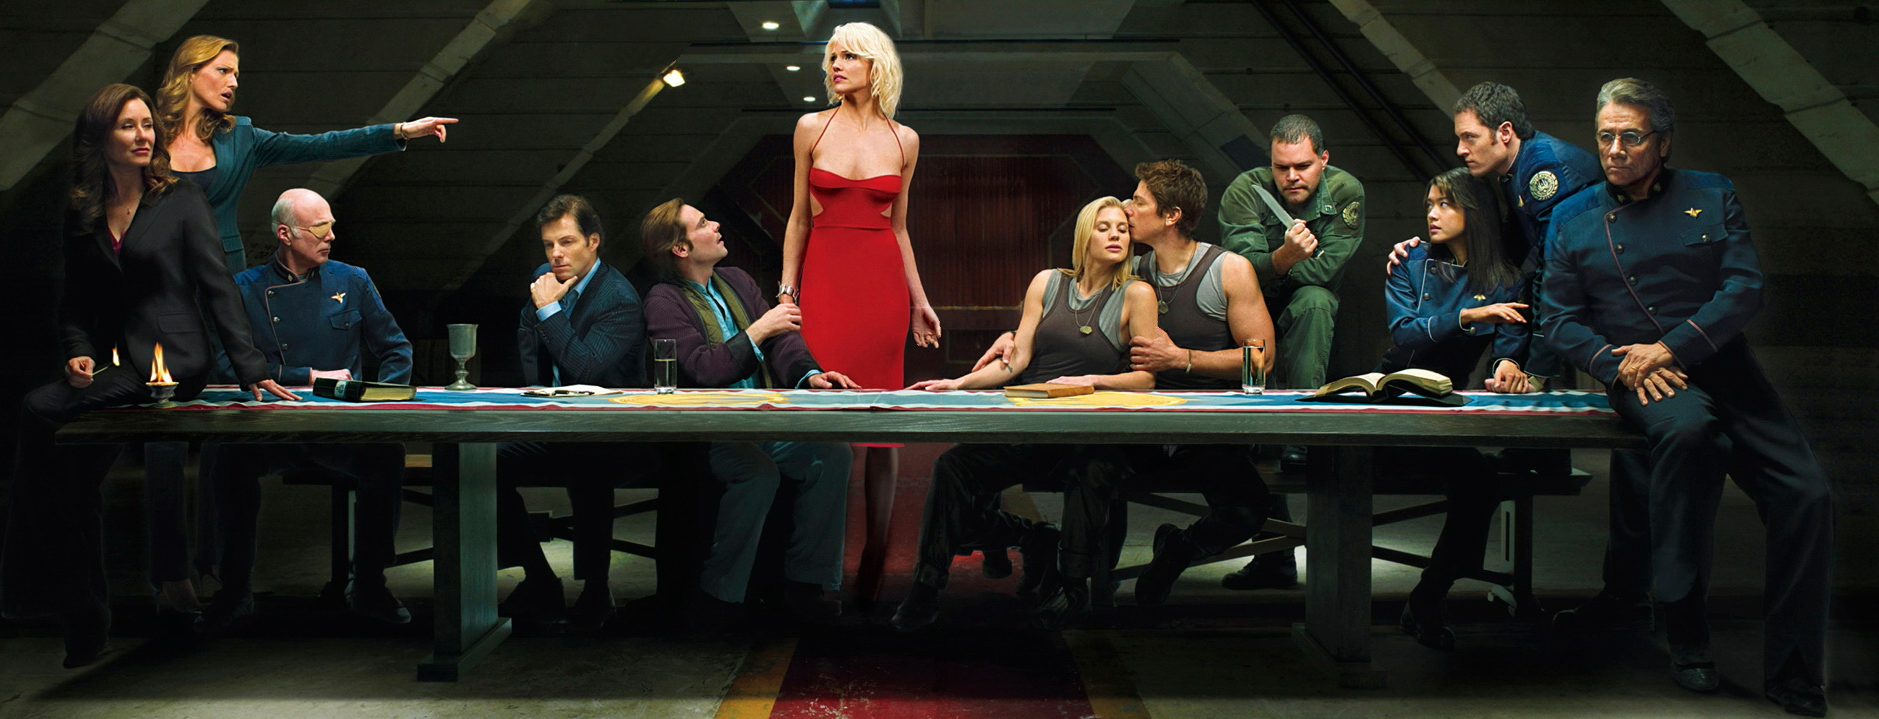 Free Streaming Battlestar Galactica